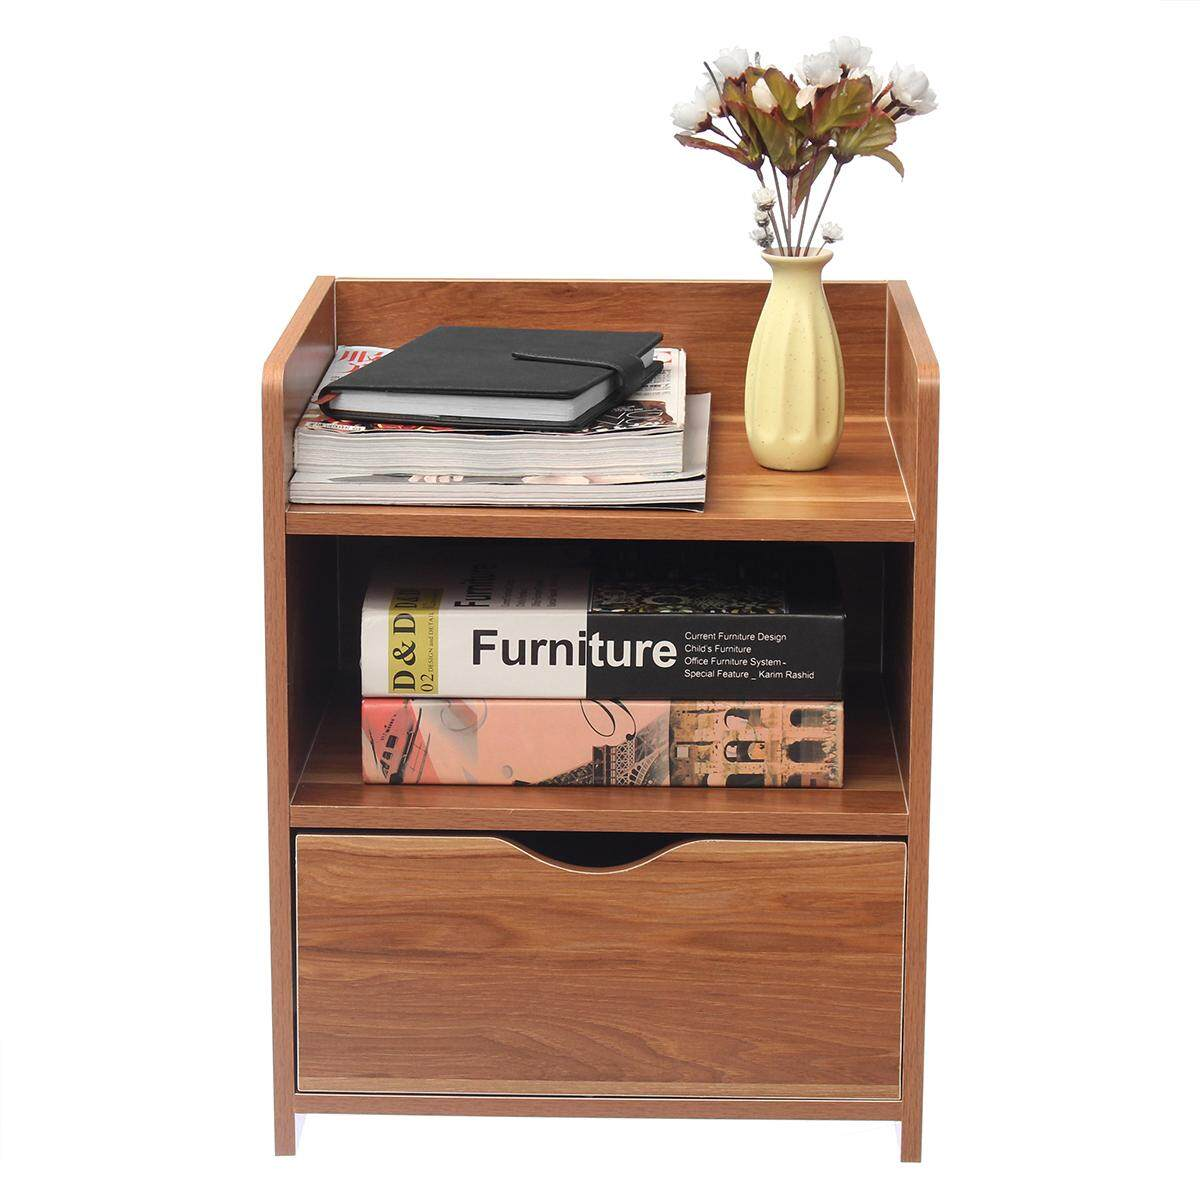 Modern Wooden Bedside Table Nightstand Storage Bedroom Cabinet Shelf Units - intl